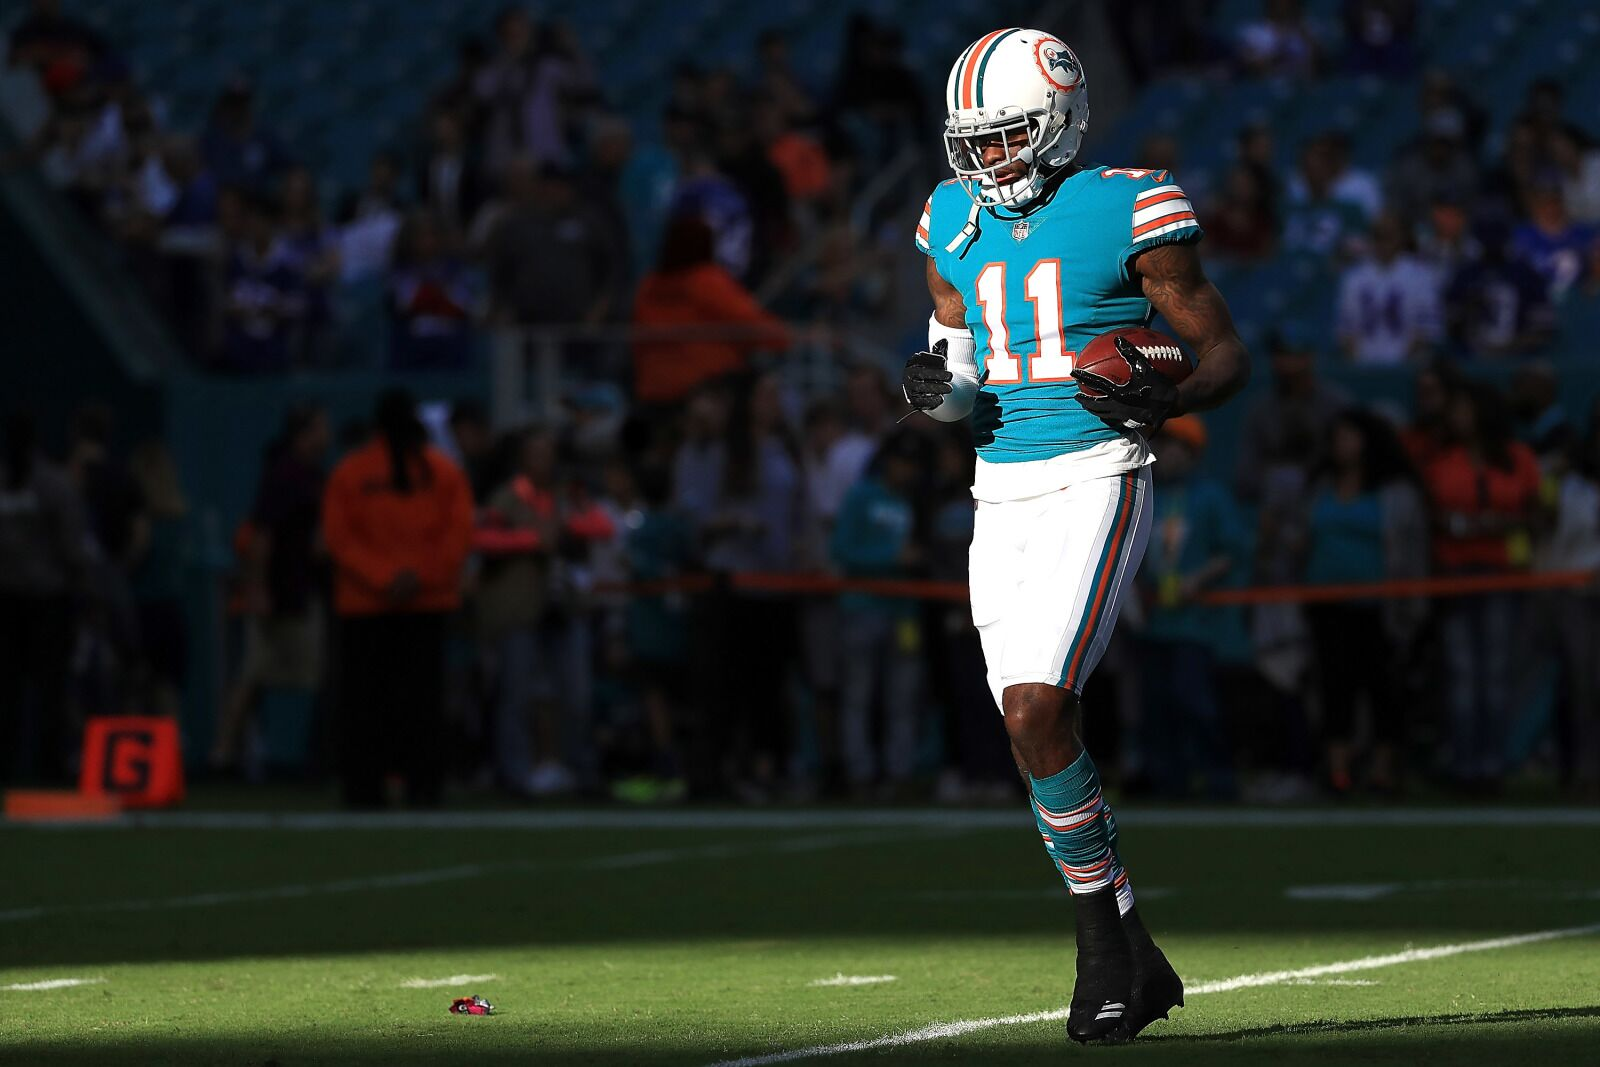 DeVante Parker kills it at practice with new QB's but temper that joy